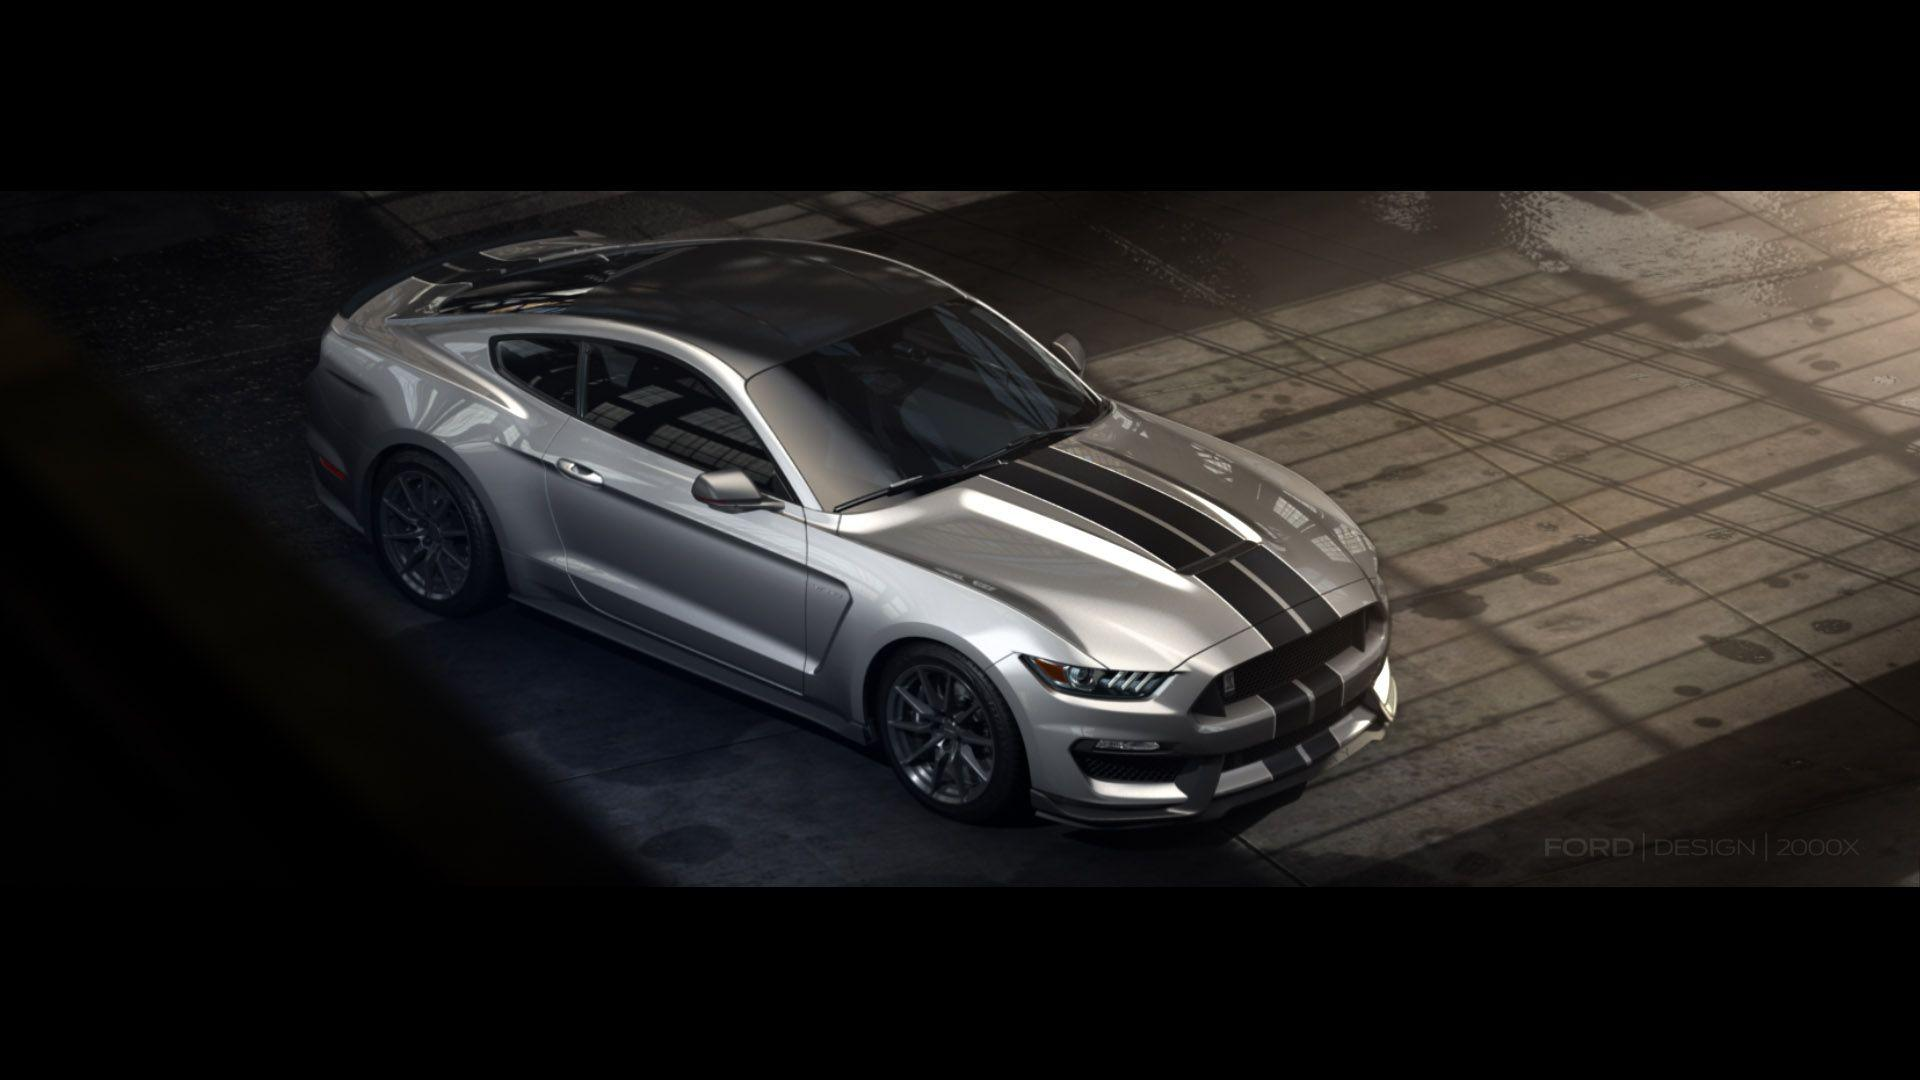 Shelby gt350 compared to BMW M4